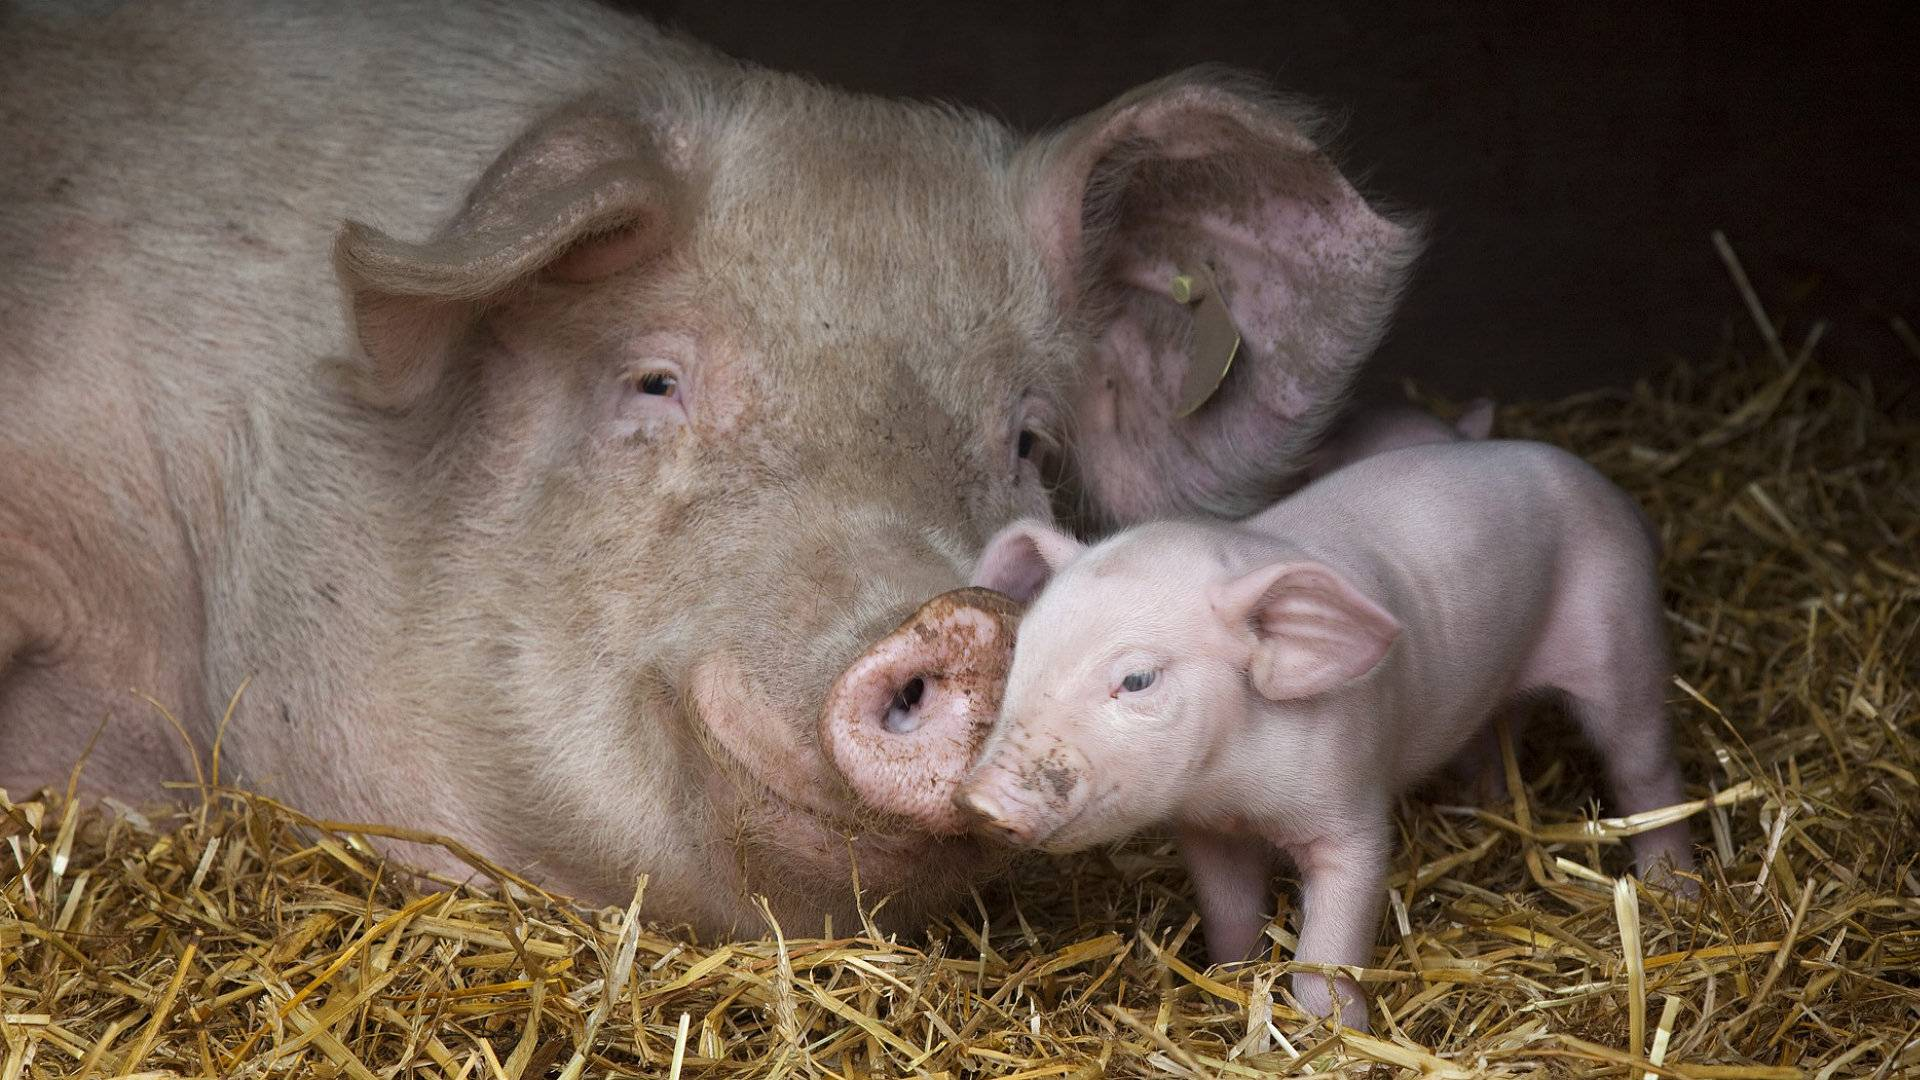 Mother and baby pig   Animal Lovers Picture 1920x1080